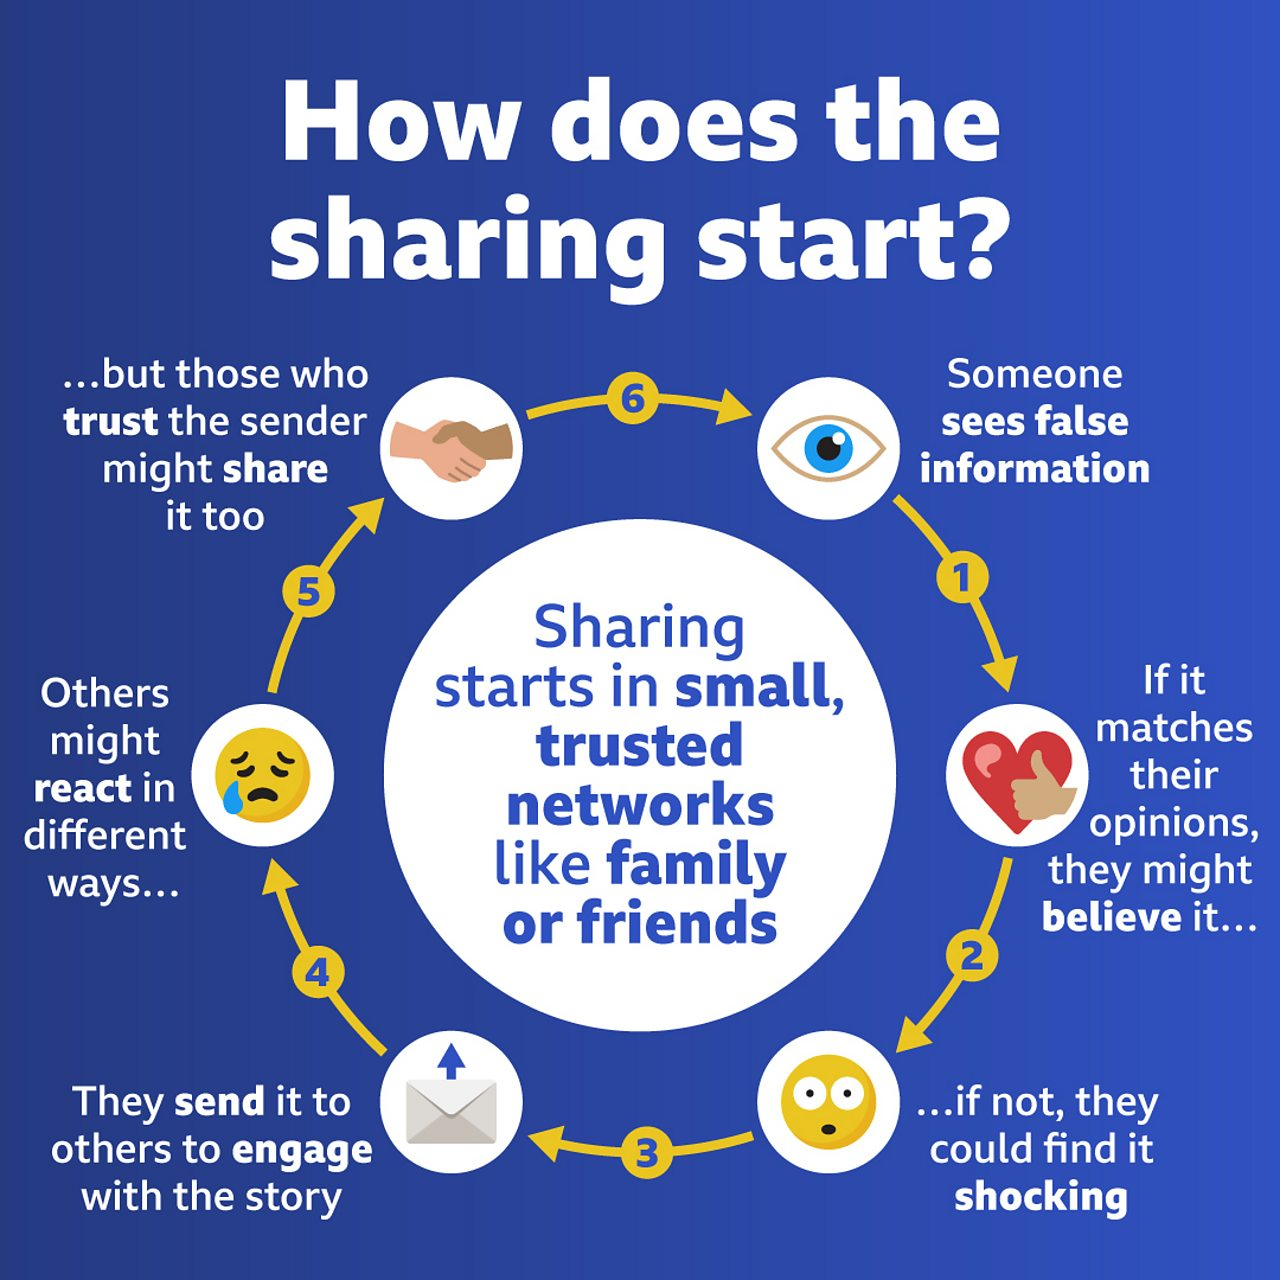 """An illustration with the title """"How does the sharing start?"""". A circle with the text """"Sharing starts in small, trusted networks like family or friends"""" inside it is surrounded by icons connected with arrows. The first is an eye with the text """"Someone sees false information""""; second, a heart and thumbs up with the text """"If it matches their opinions, they might believe it…""""; third, a sad face and thumbs down with the text """"…if not, they could find it shocking""""; fourth, an envelope with the text """"They send it to others to engage with the story""""; fifth, a shocked face with the text """"Others might react in different ways…""""; finally, a handshake with the text """"…but those who trust the sender might share it too"""" connected back to the first icon."""